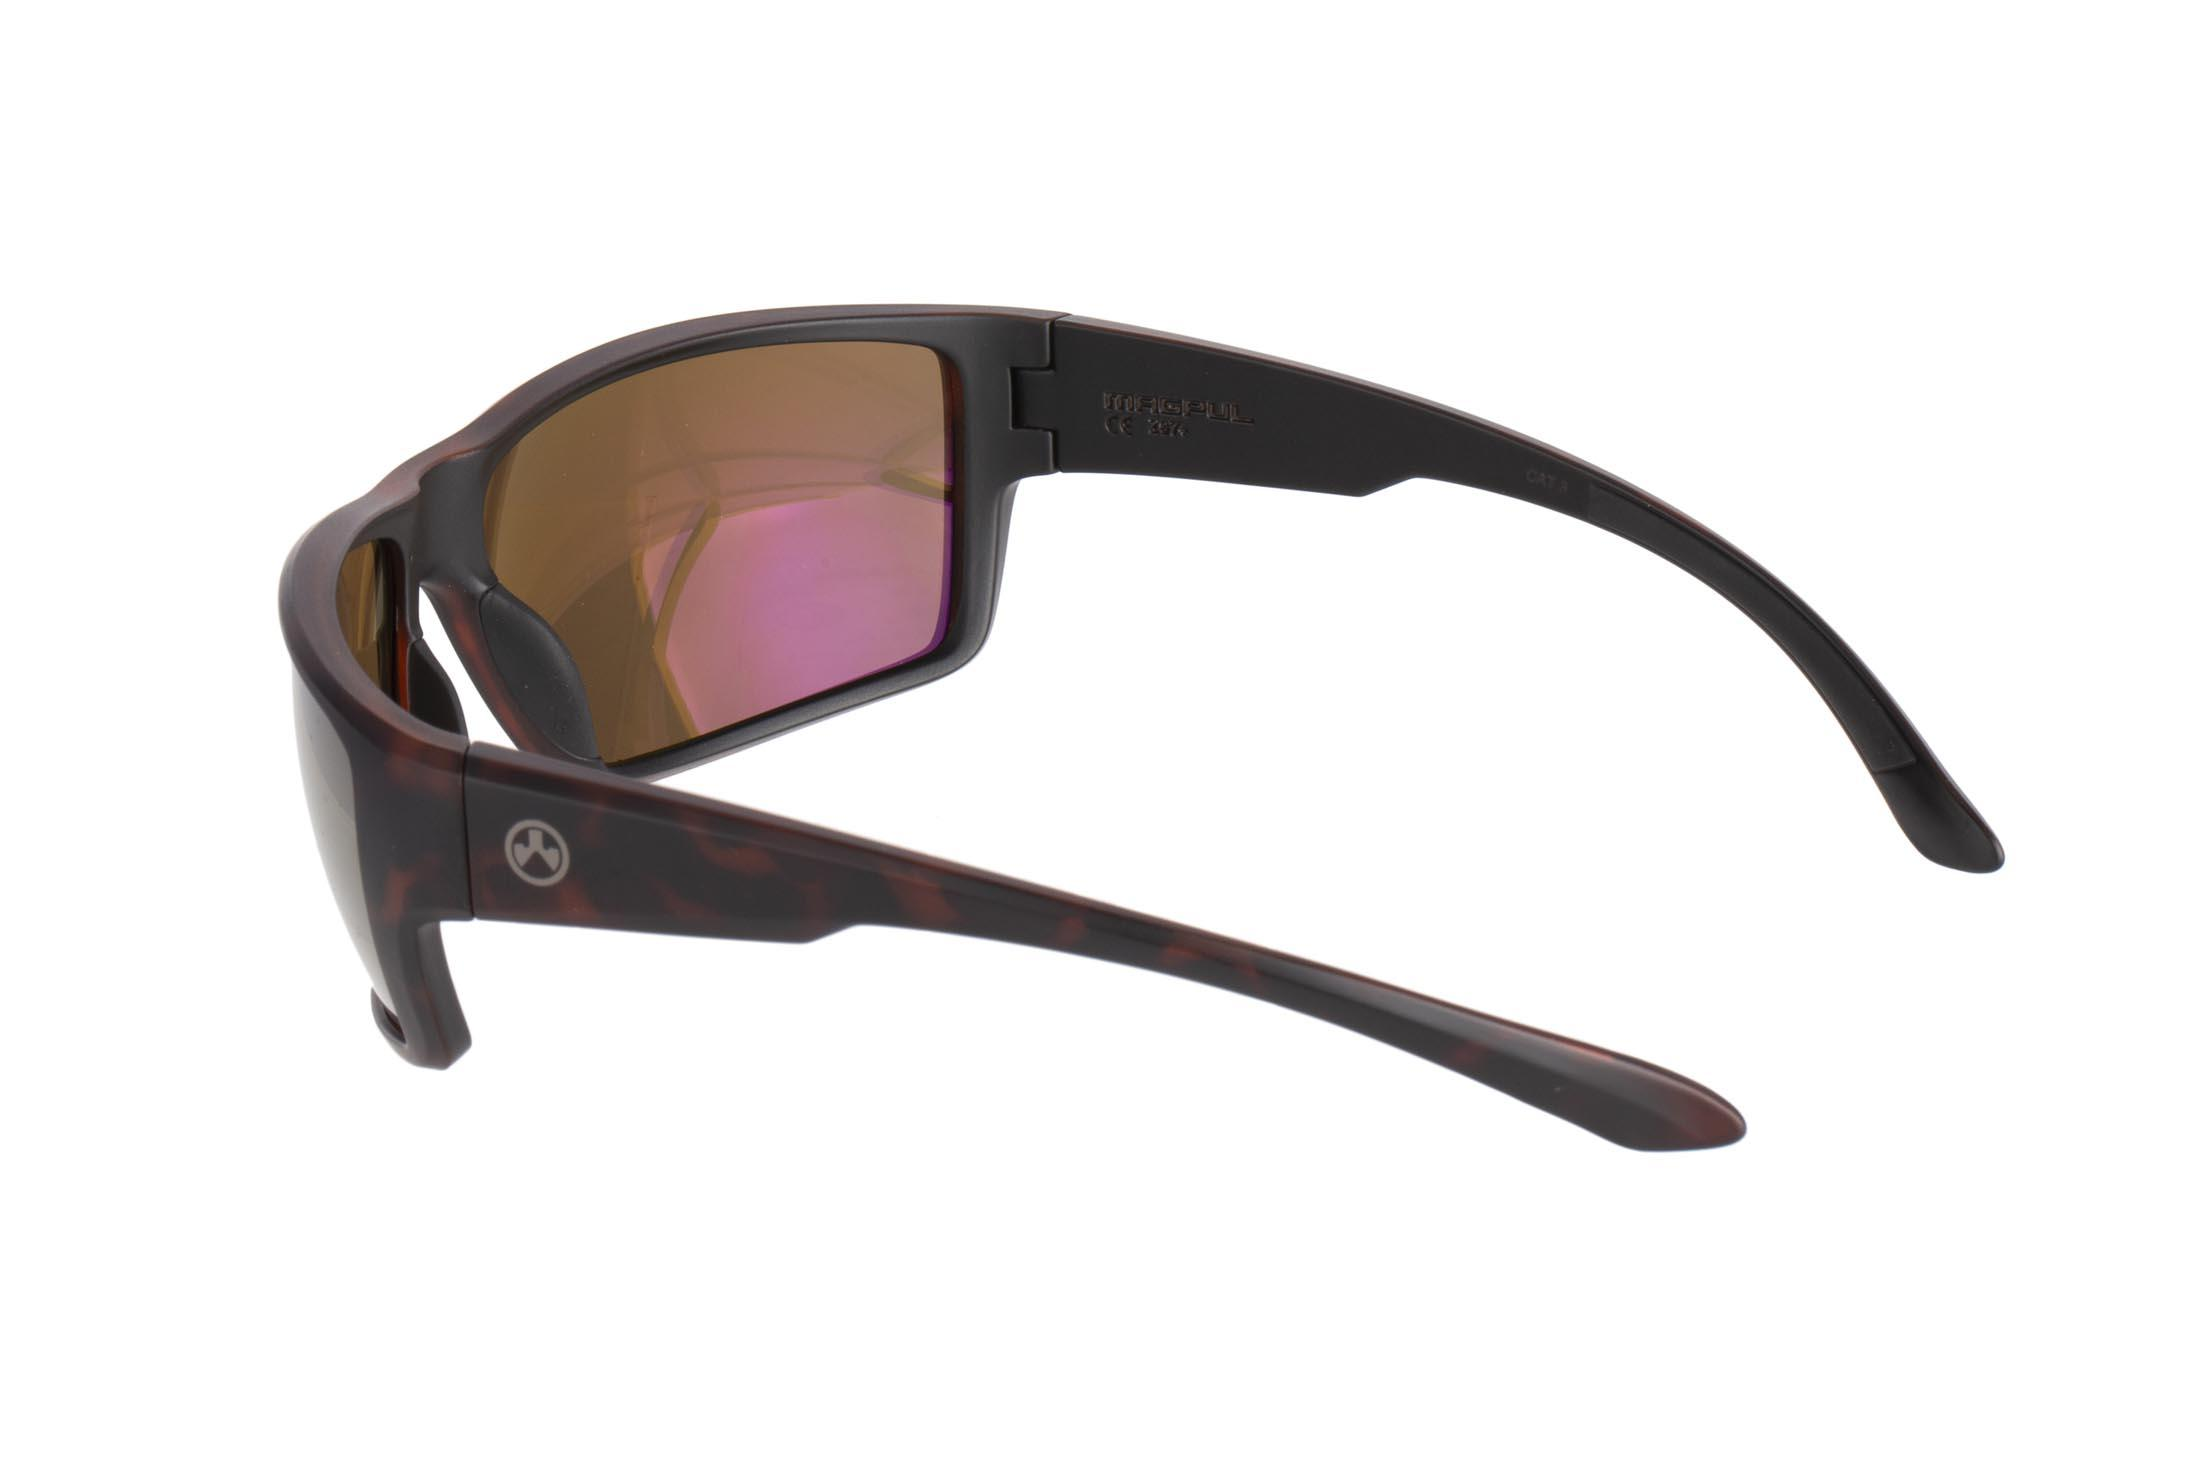 5473de33cc7 ... Magpul Terrain tortoise frame eye protection with polarized bronze gold  lenses are designed to complement ...